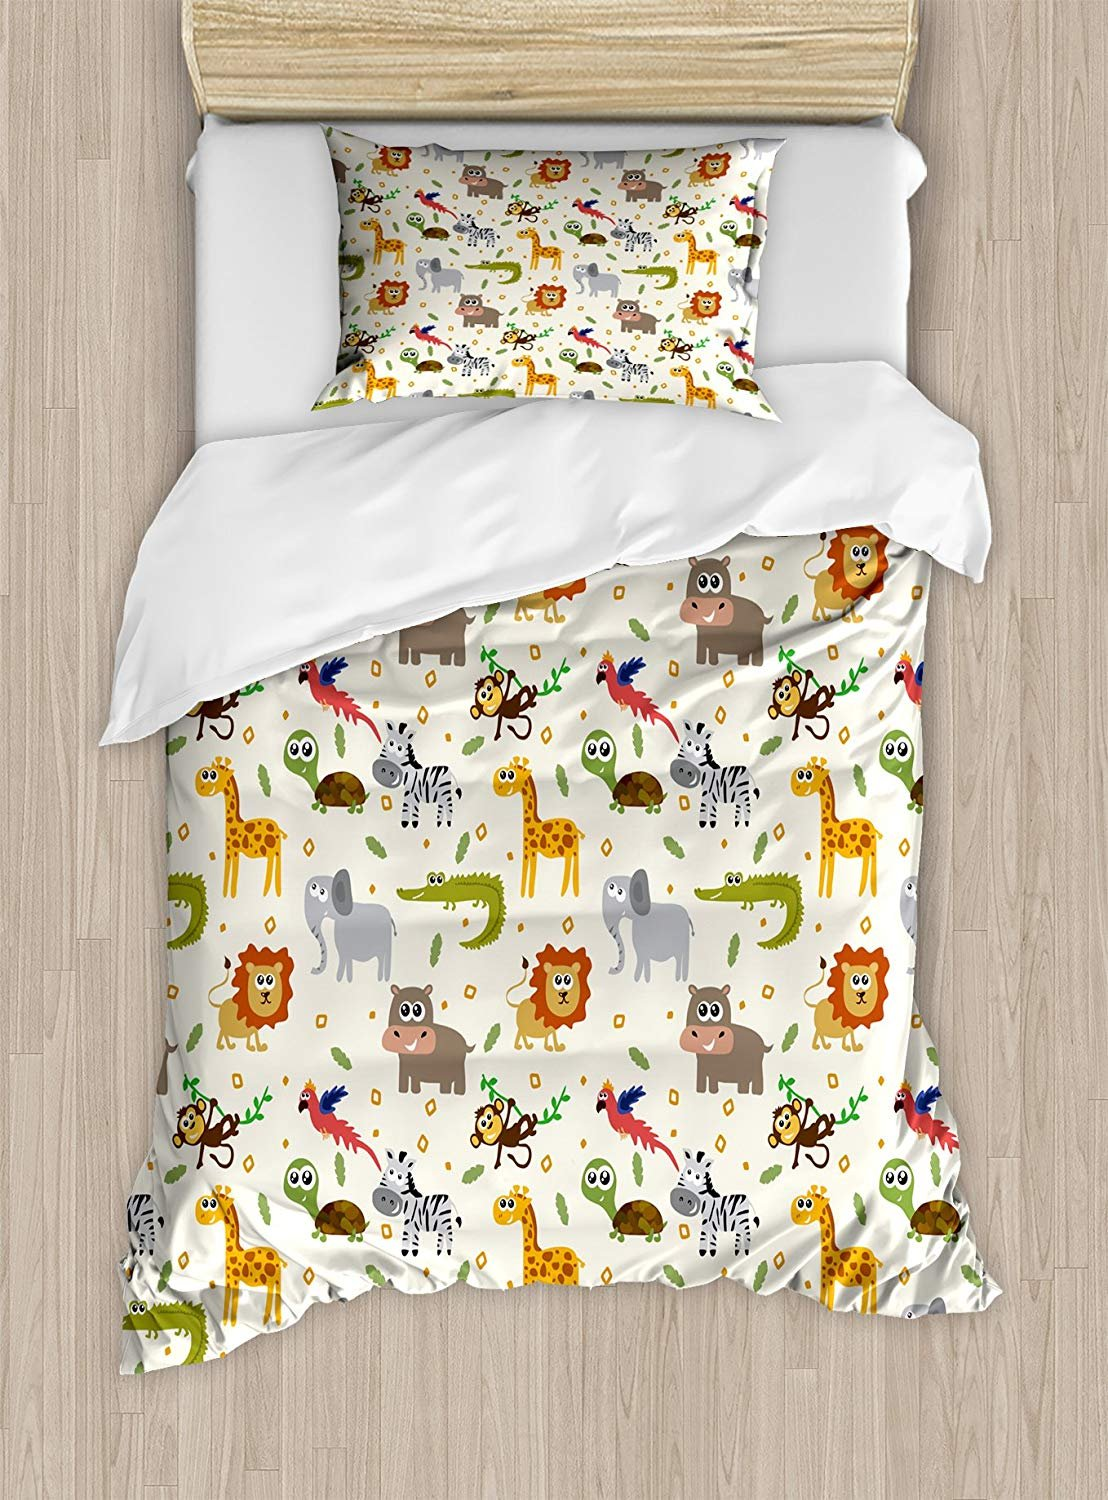 Cartoon Animal Duvet Cover Set,African Australian Childish Fauna Silly Faces Safari Lion Elephant Crocodile,Cosy House Collection 4 Piece Bedding Sets